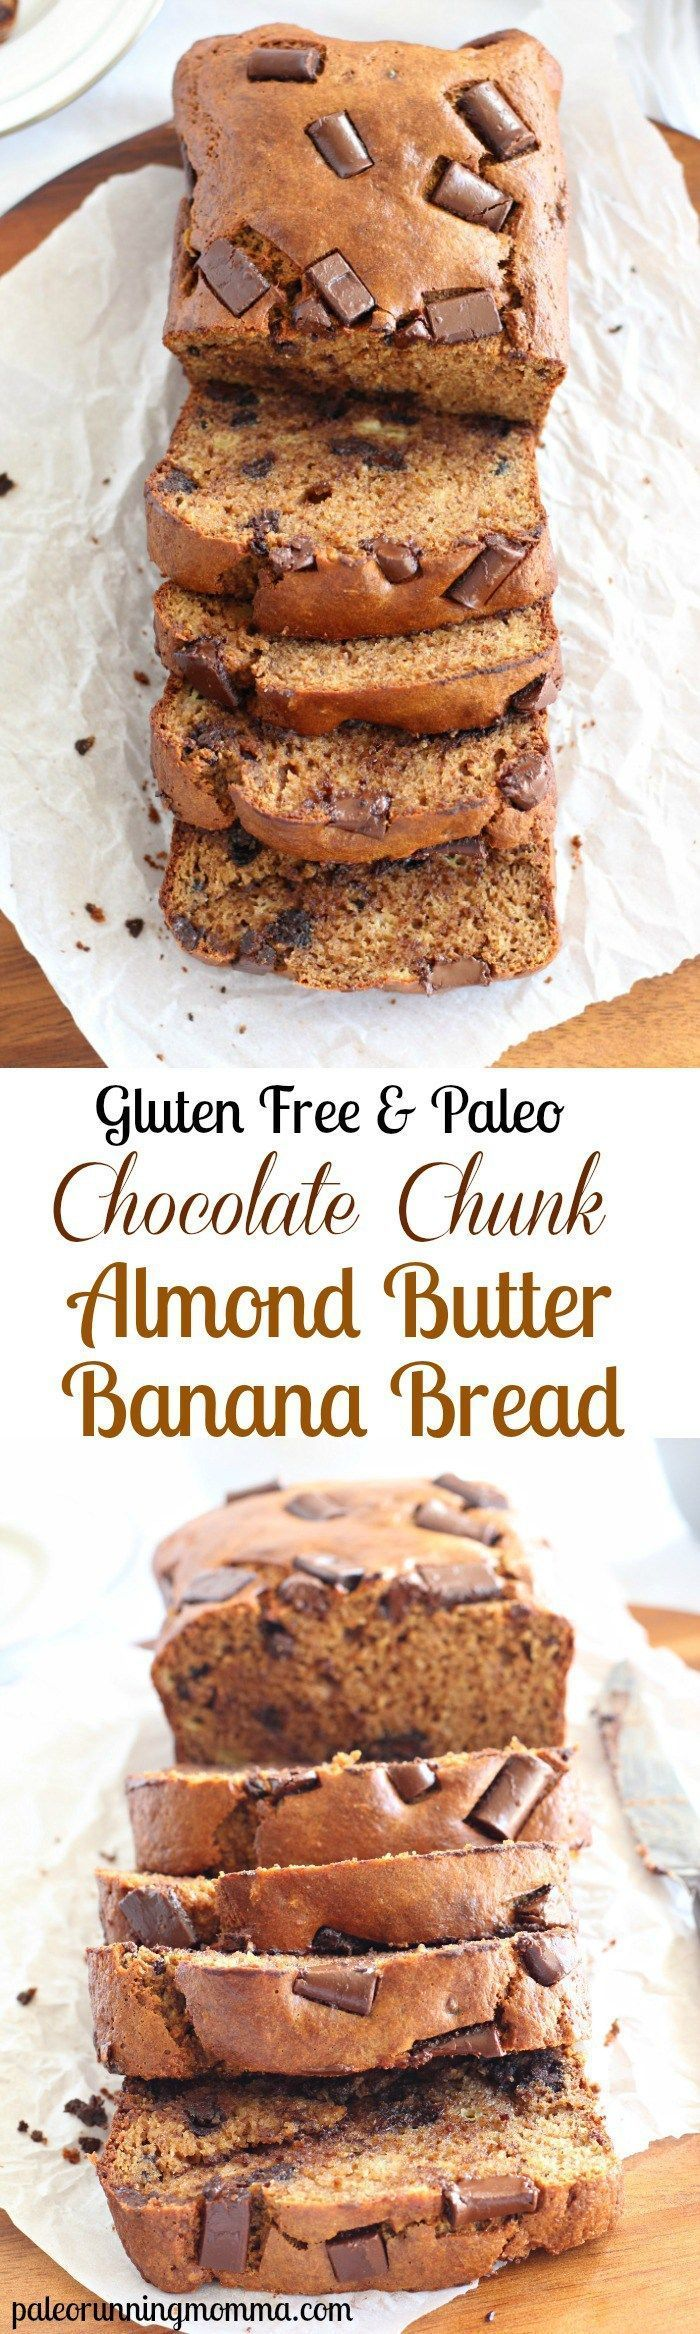 Chocolate Chunk Almond Butter Banana Bread - #glutenfree #grainfree #dairyfree #paleo